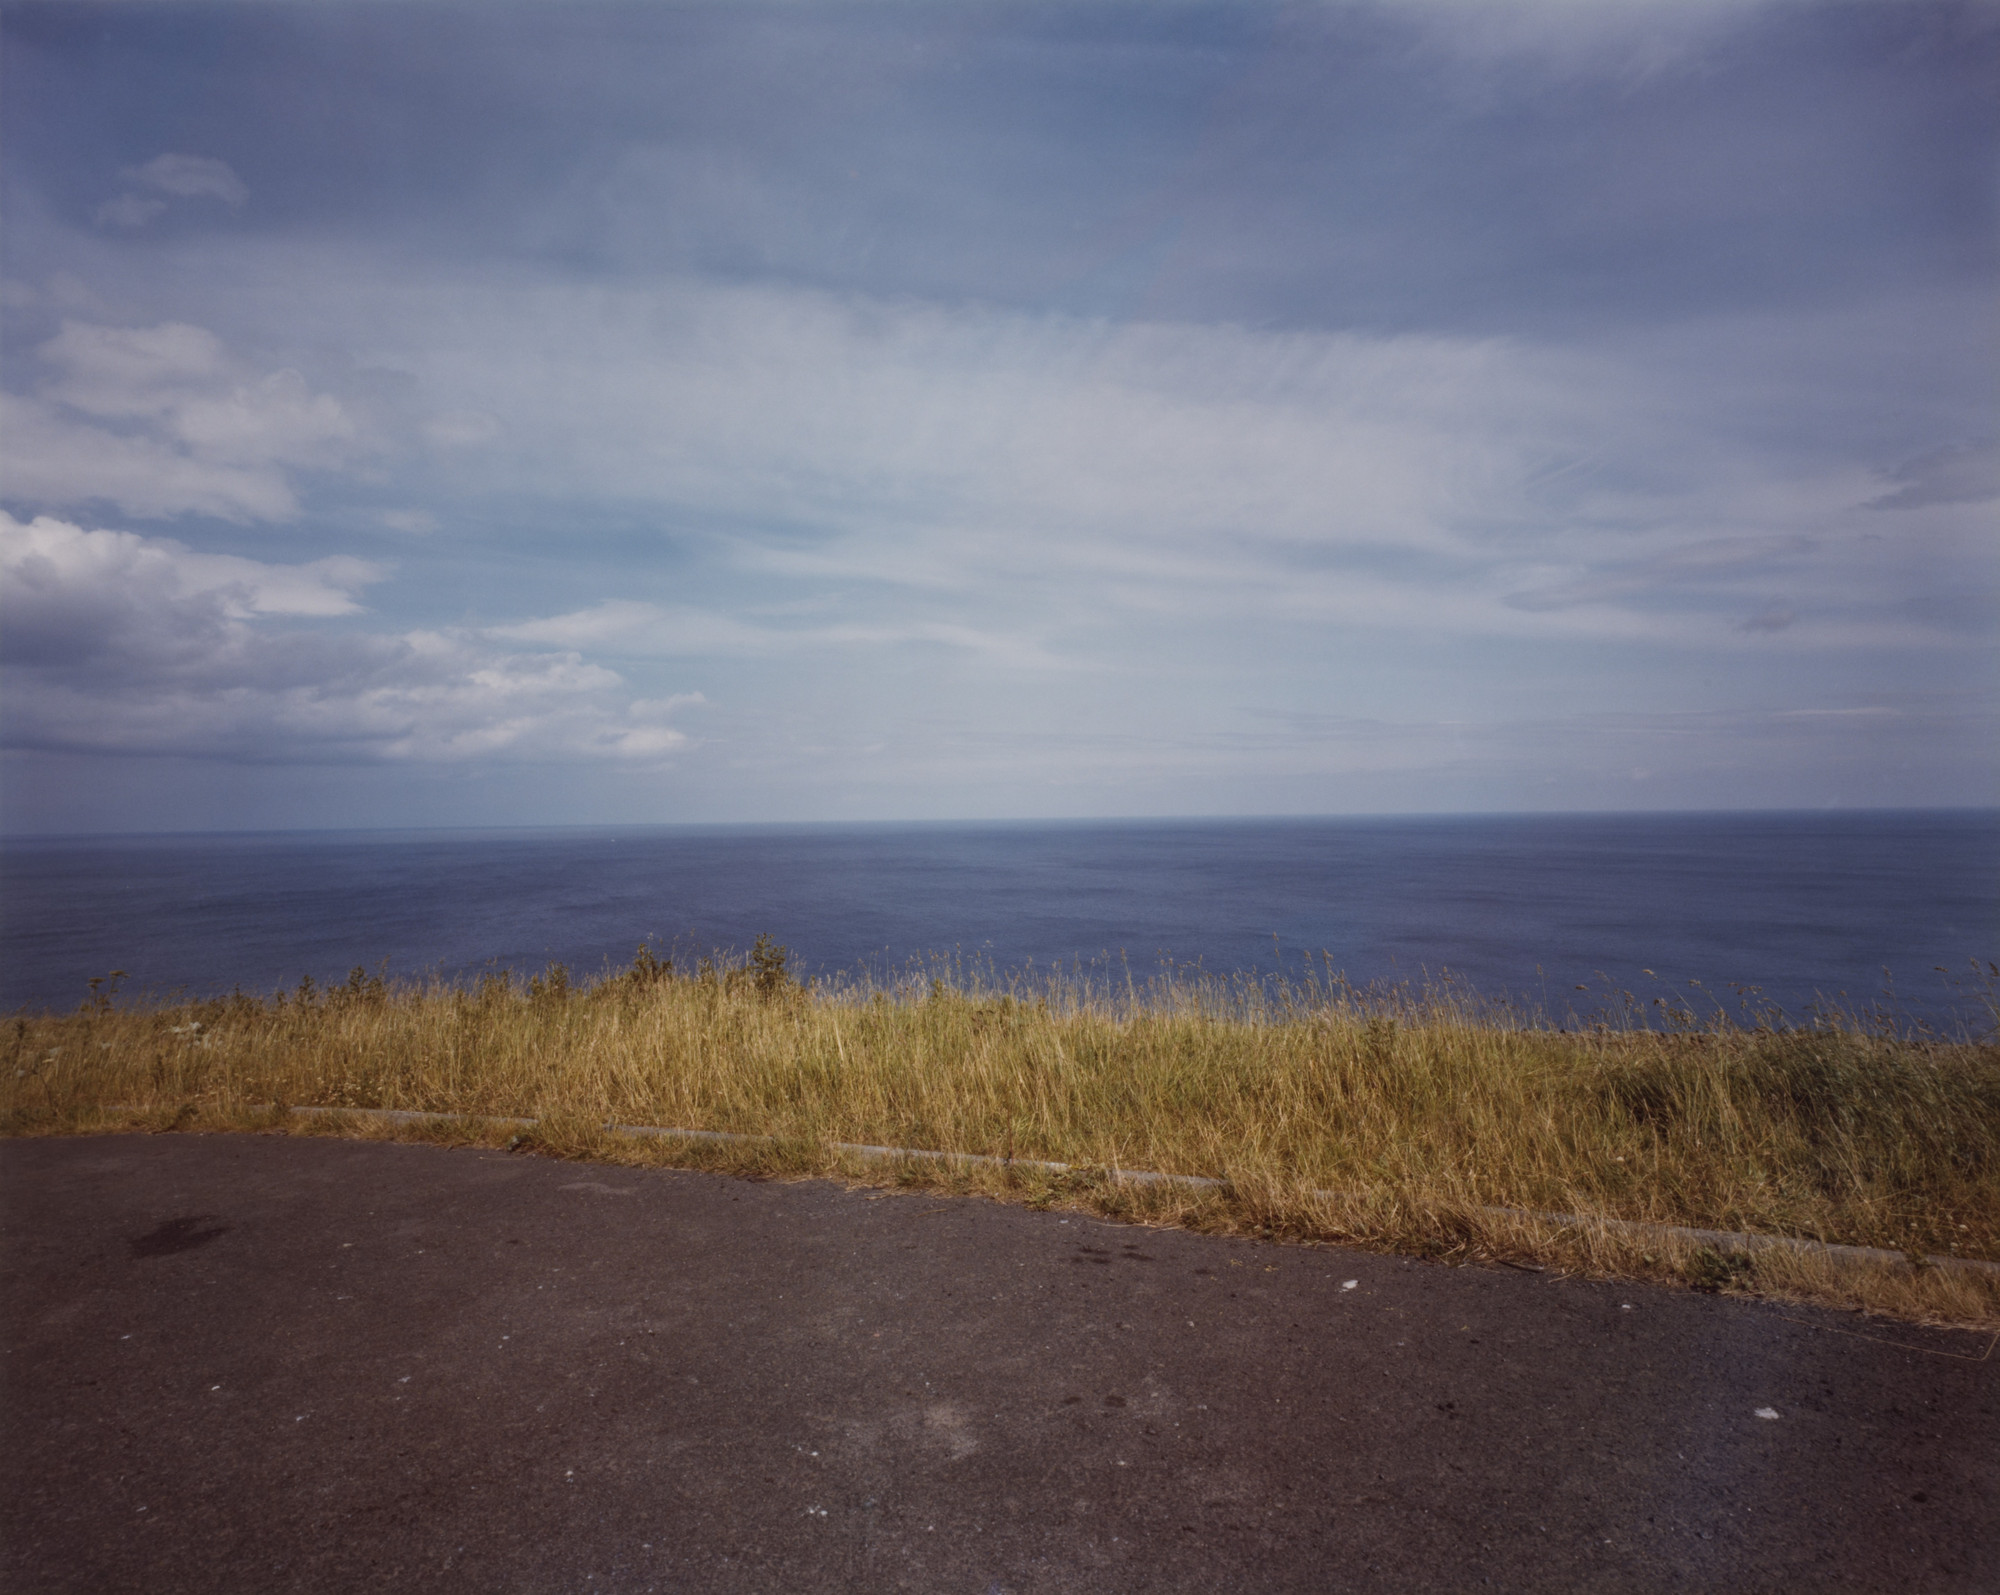 Paul Graham. North Sea, Borders from the portfolio A1: The Great North Road. May 1981